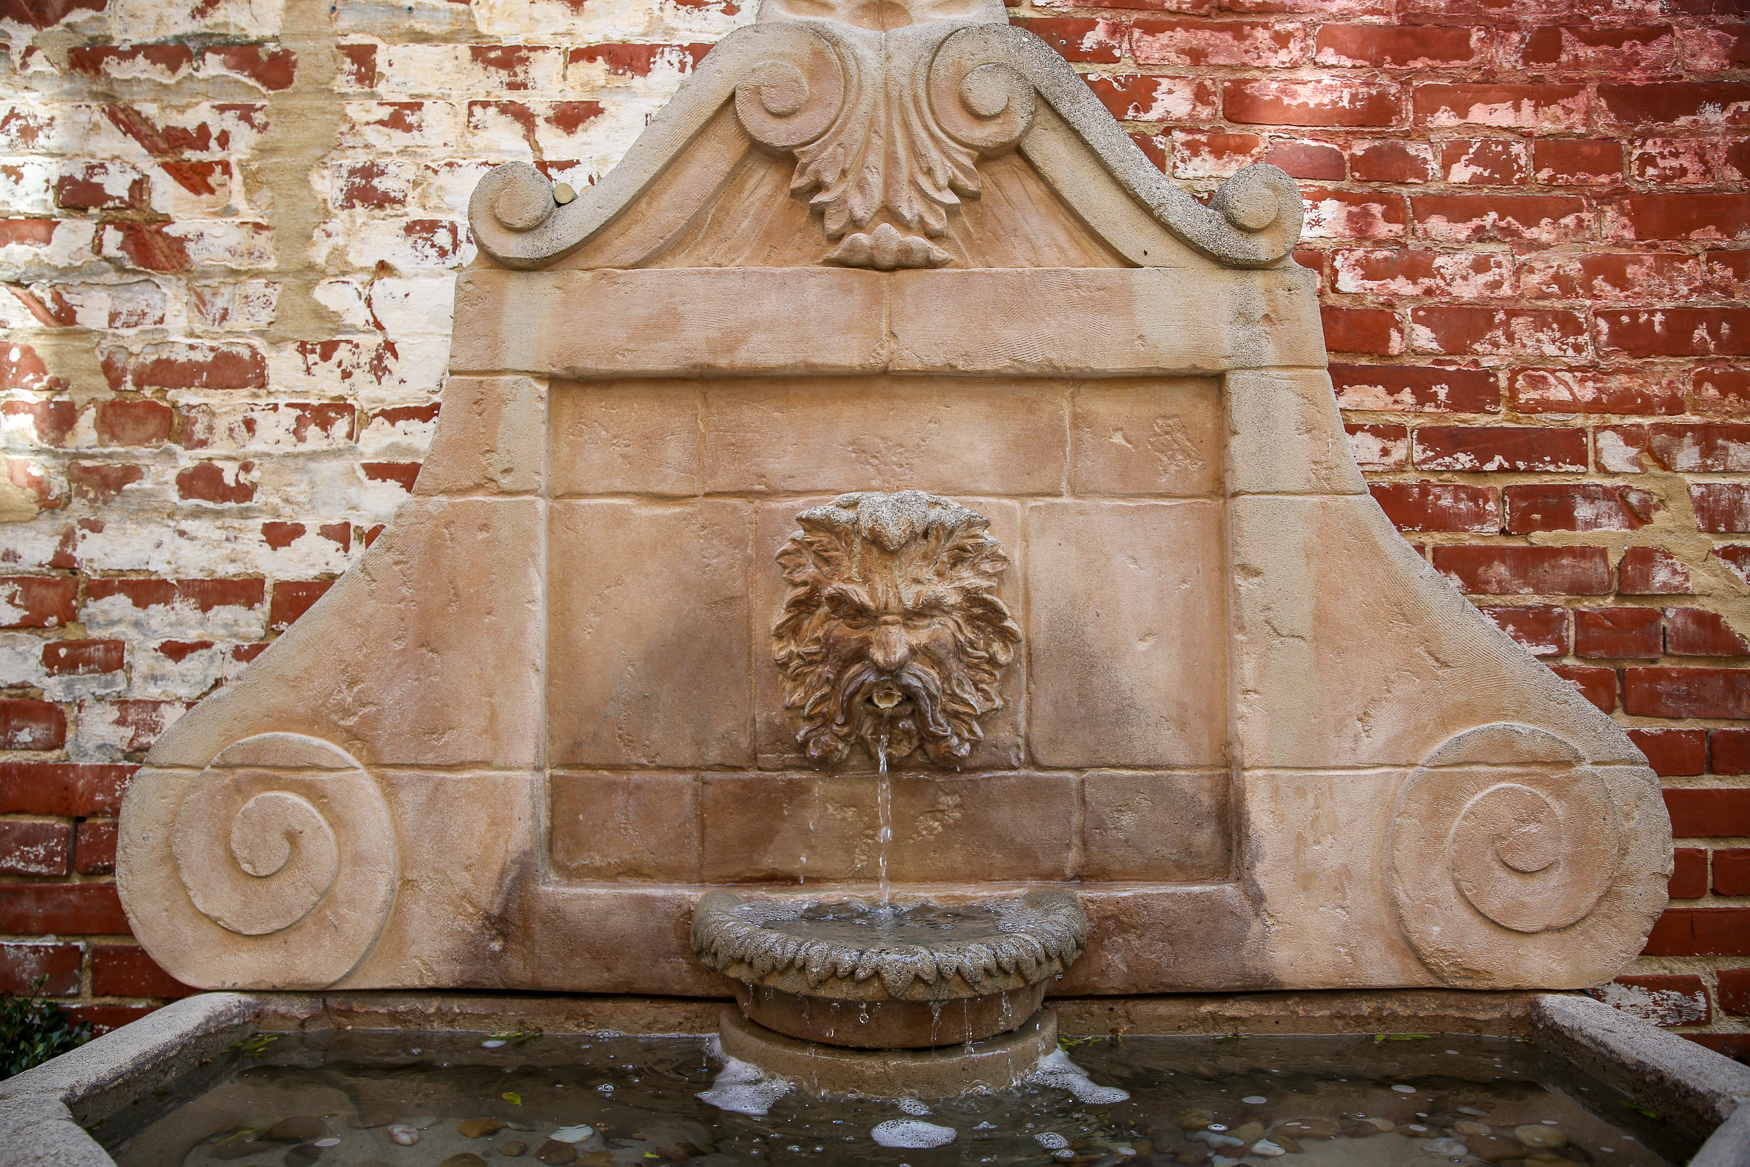 Fountains anchored in the wall were a popular look - it adds visual interest to a small garden without taking up too much space.{ }{ }(Amanda Andrade-Rhoades/DC Refined)